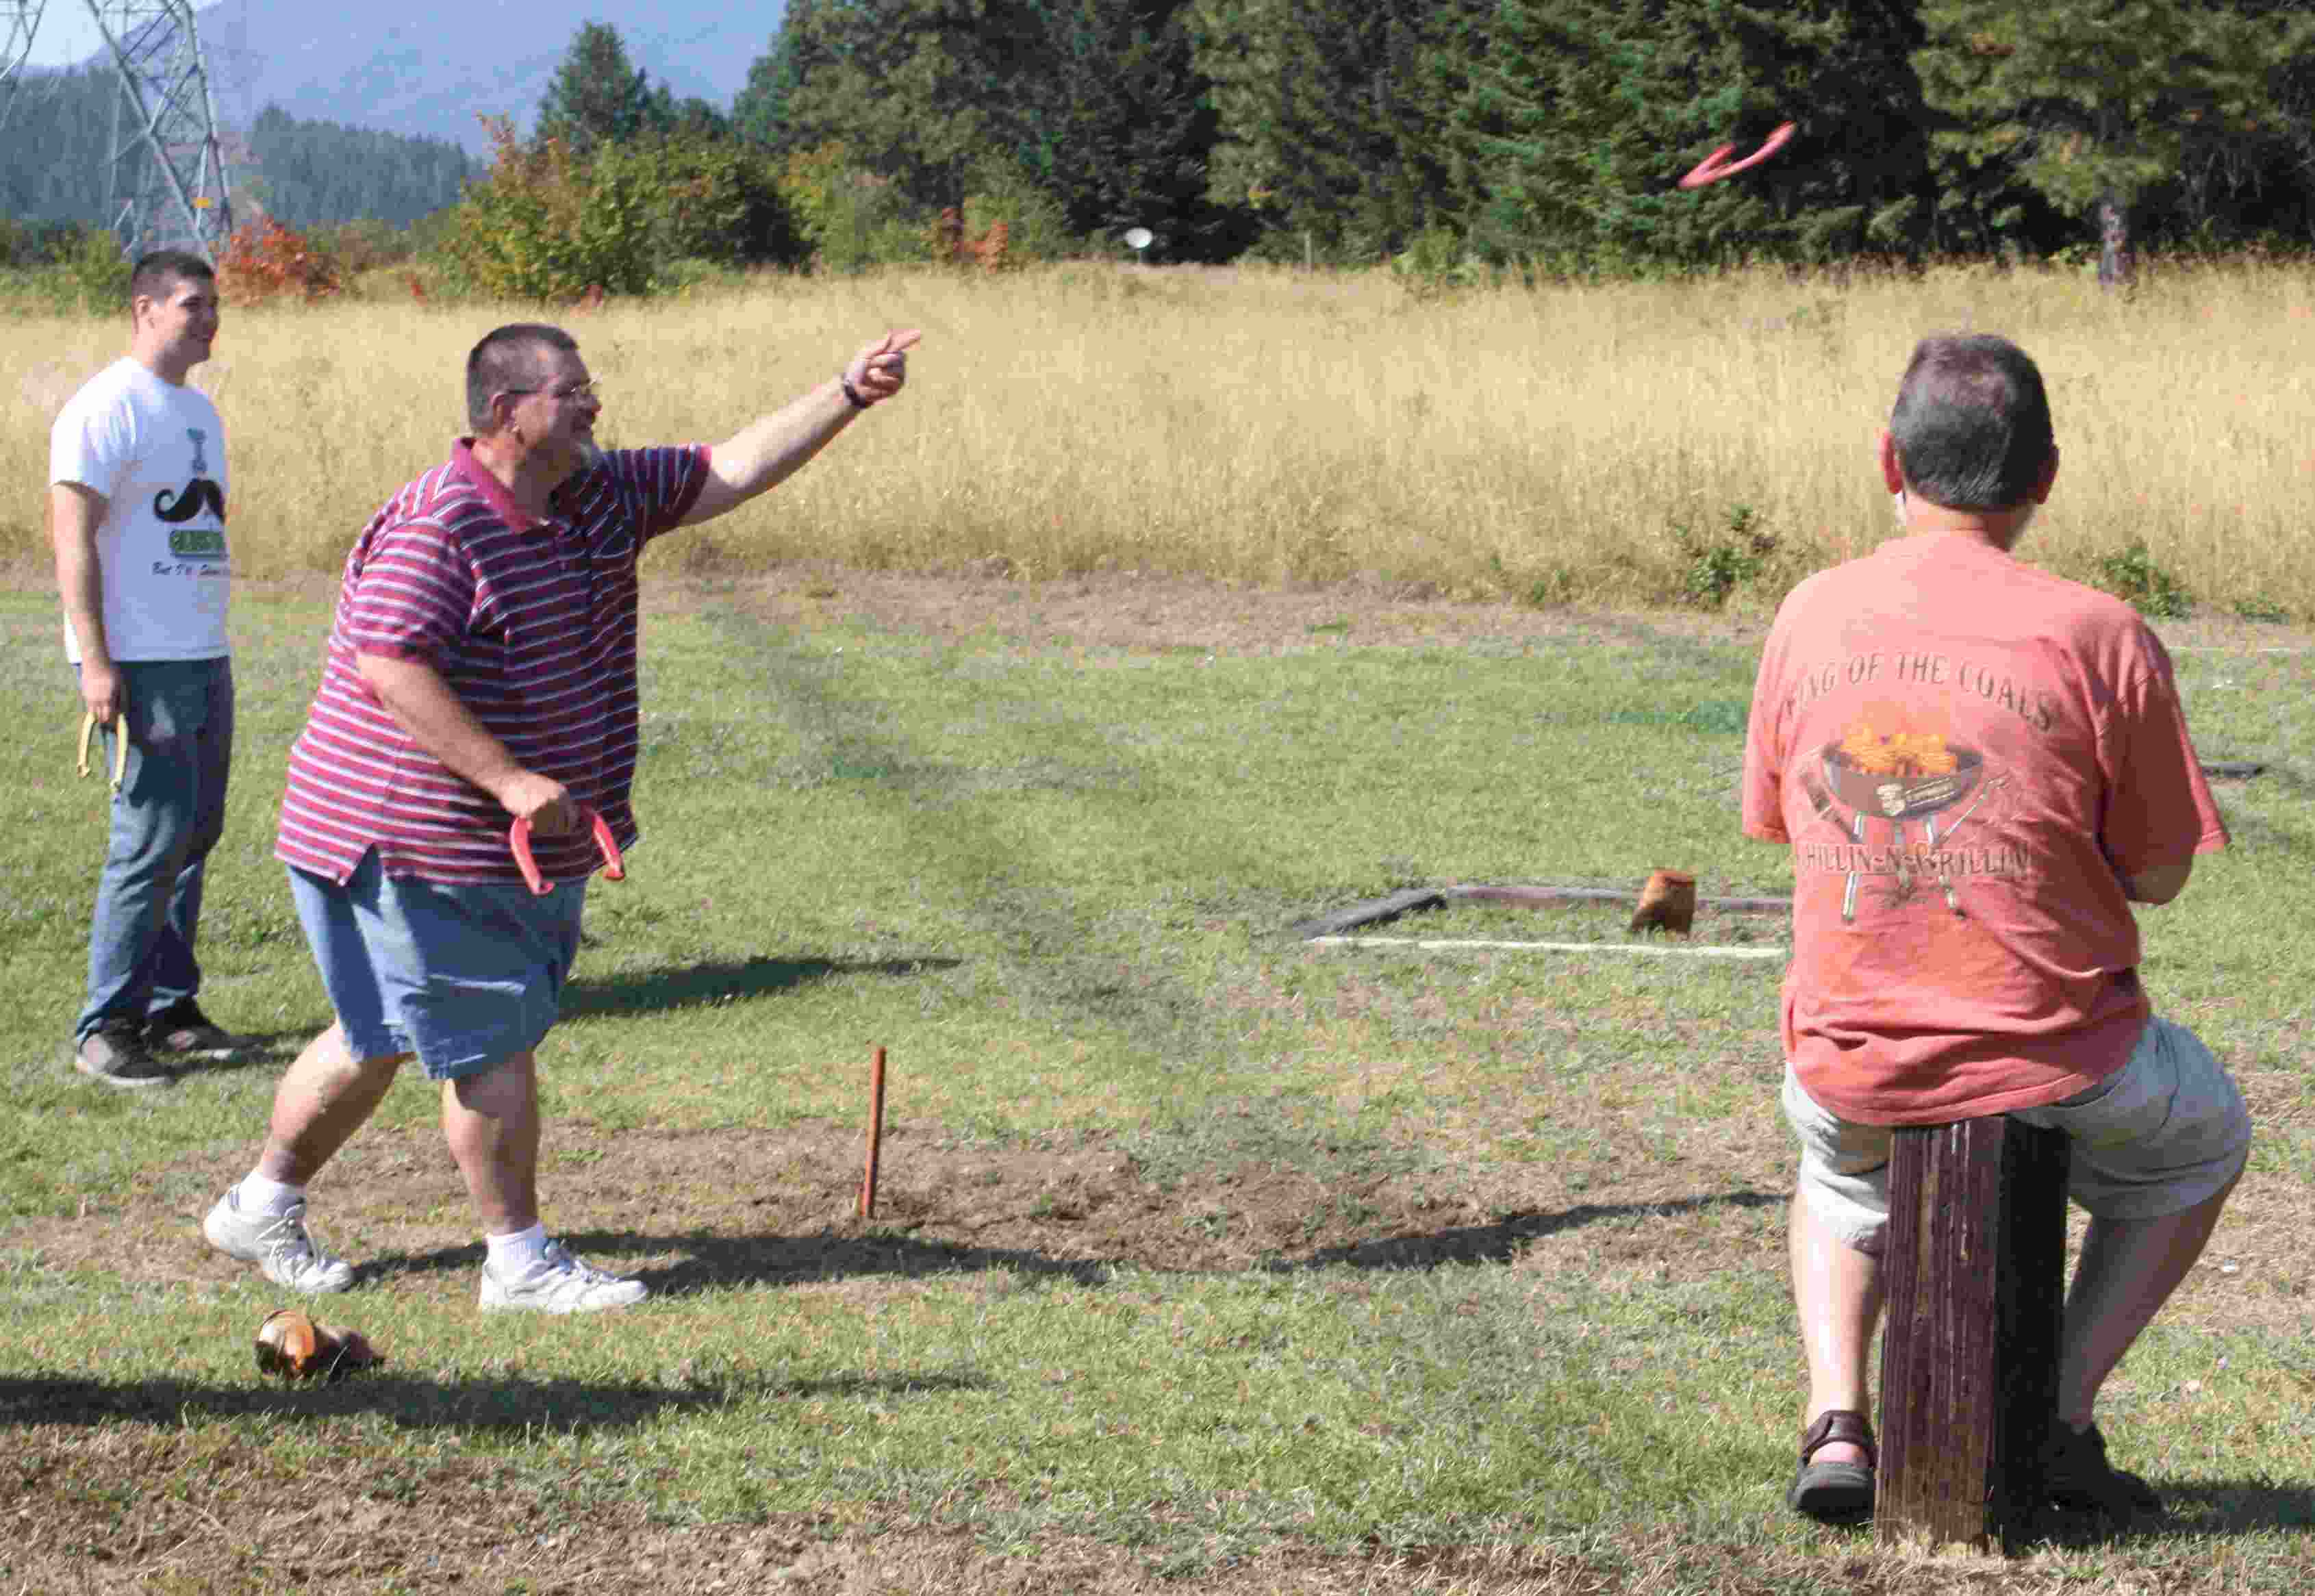 playing horseshoes